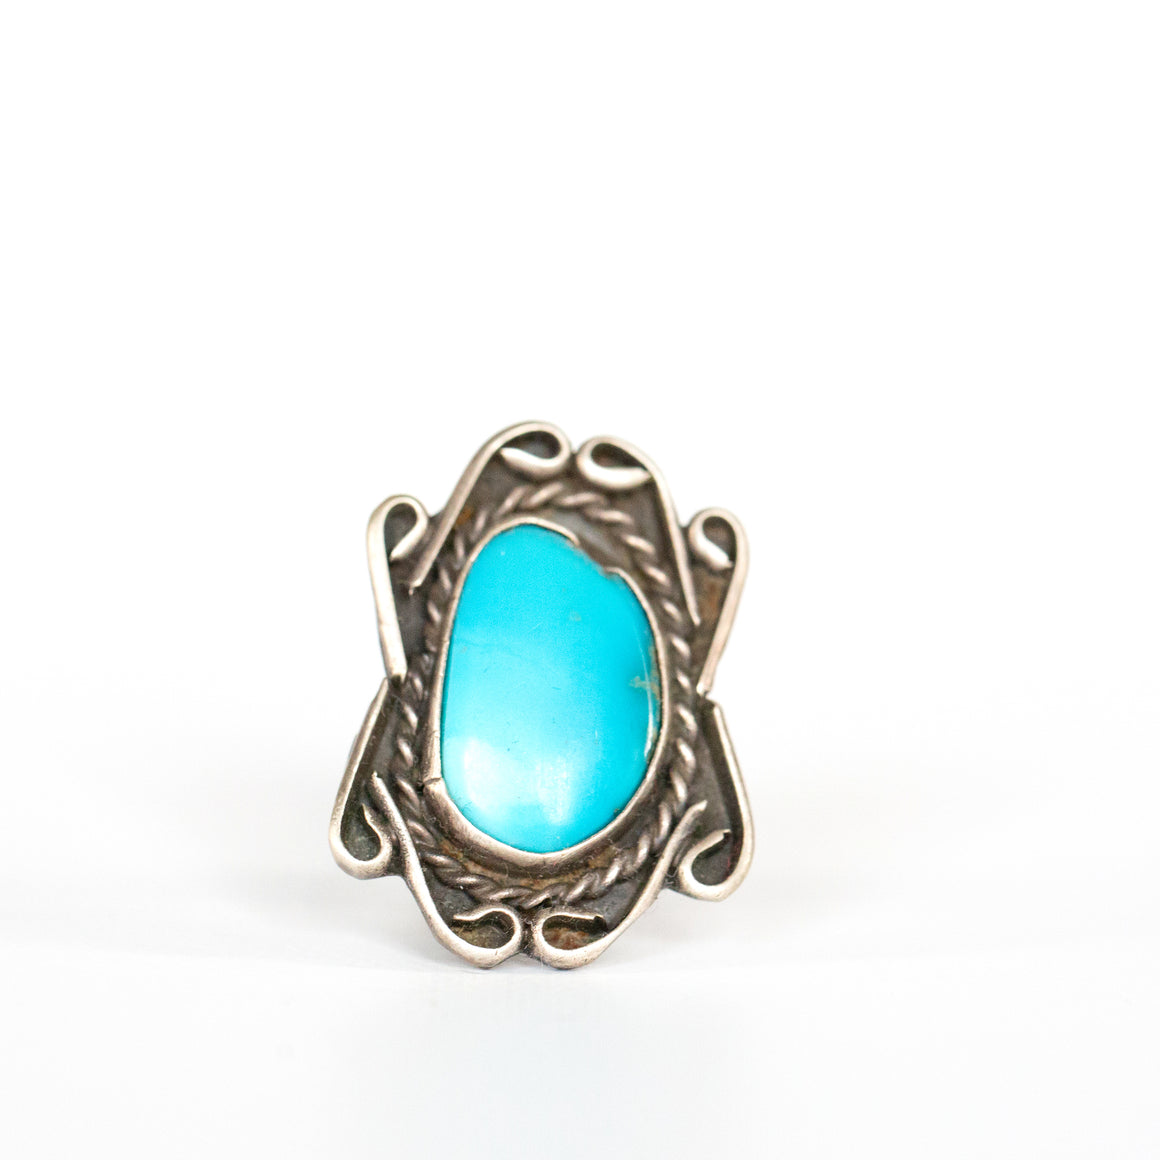 VINTAGE JEWELRY | LARGE TURQUOISE STERLING RING (SIZE 5)